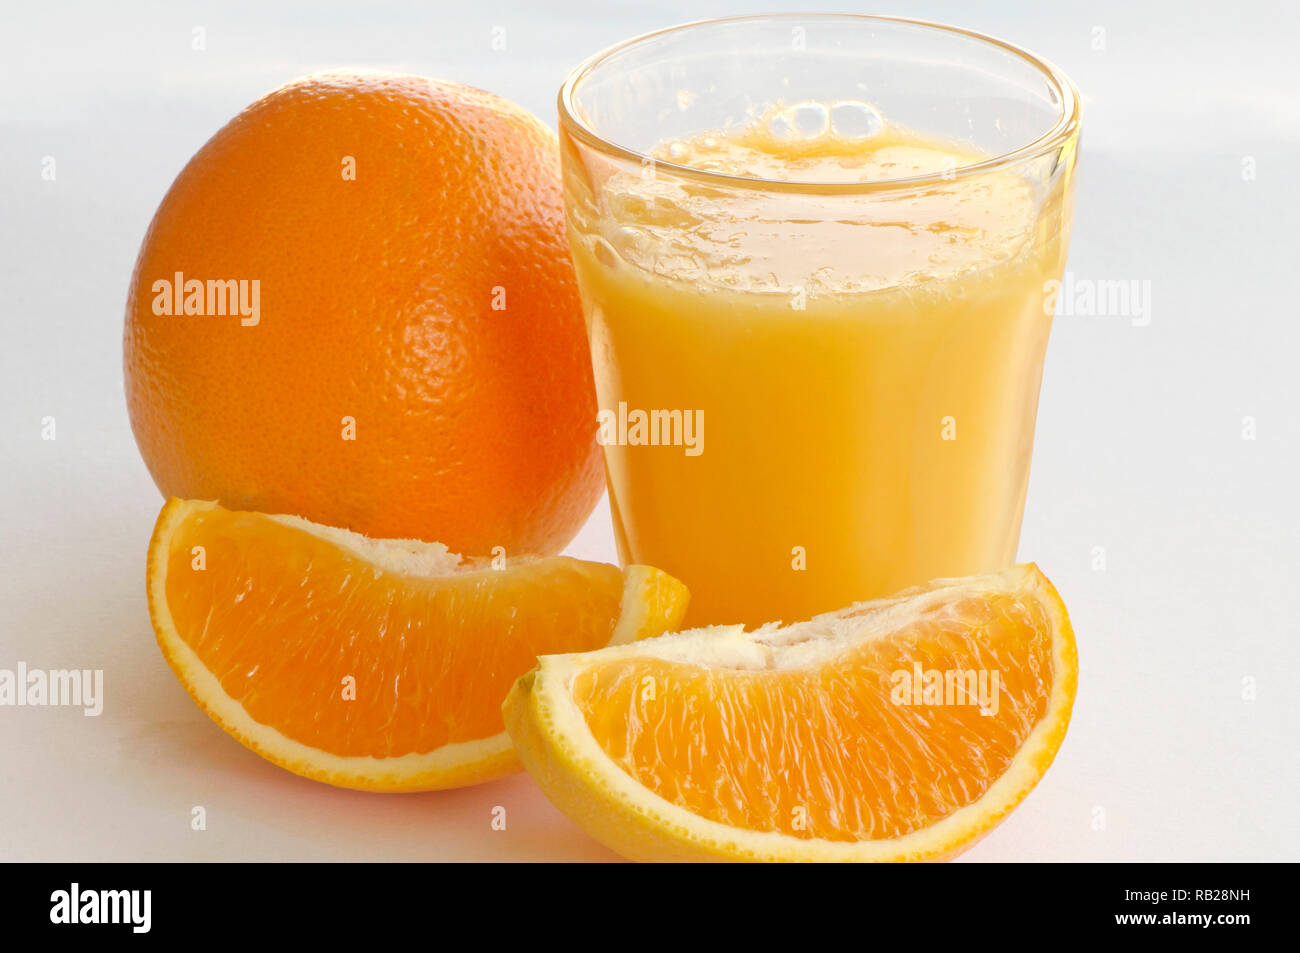 a-glass-of-orange-juice-with-a-whole-navel-orange-citrus-x-sinensis-and-two-orange-wedges-on-a-white-background-RB28NH.jpg